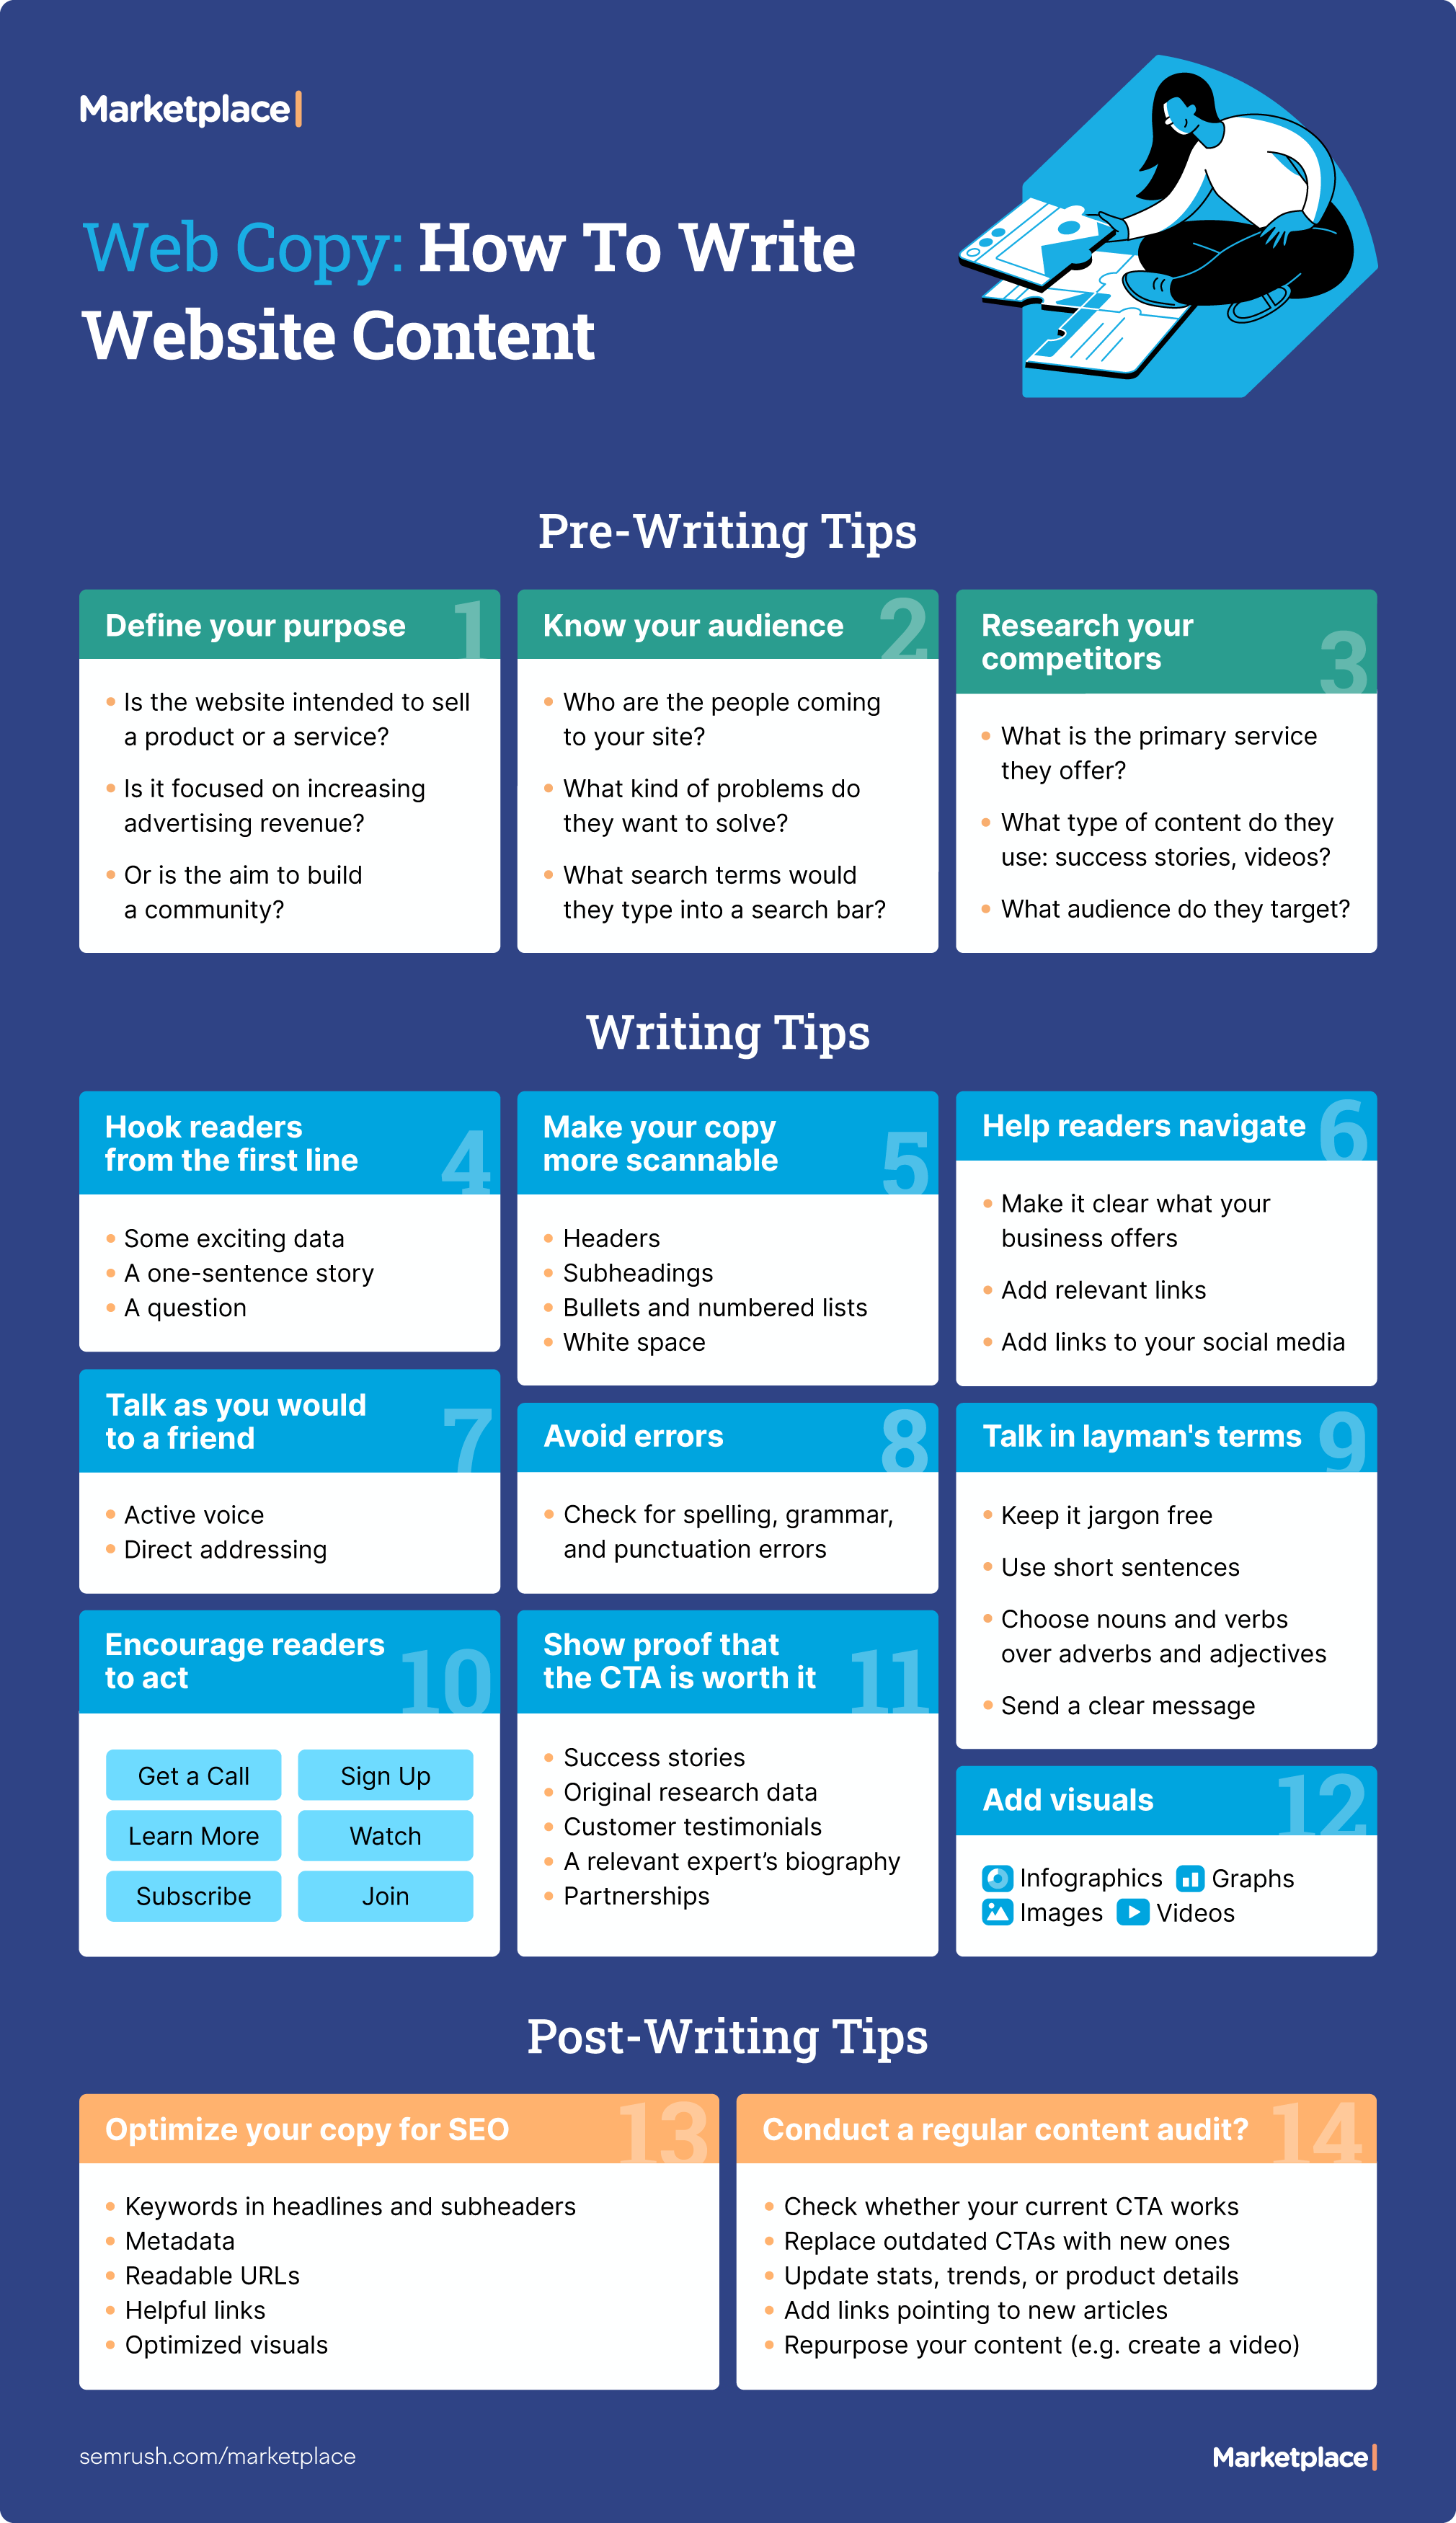 Website_Copy_101_How_To_Write_Website_Content_1.png